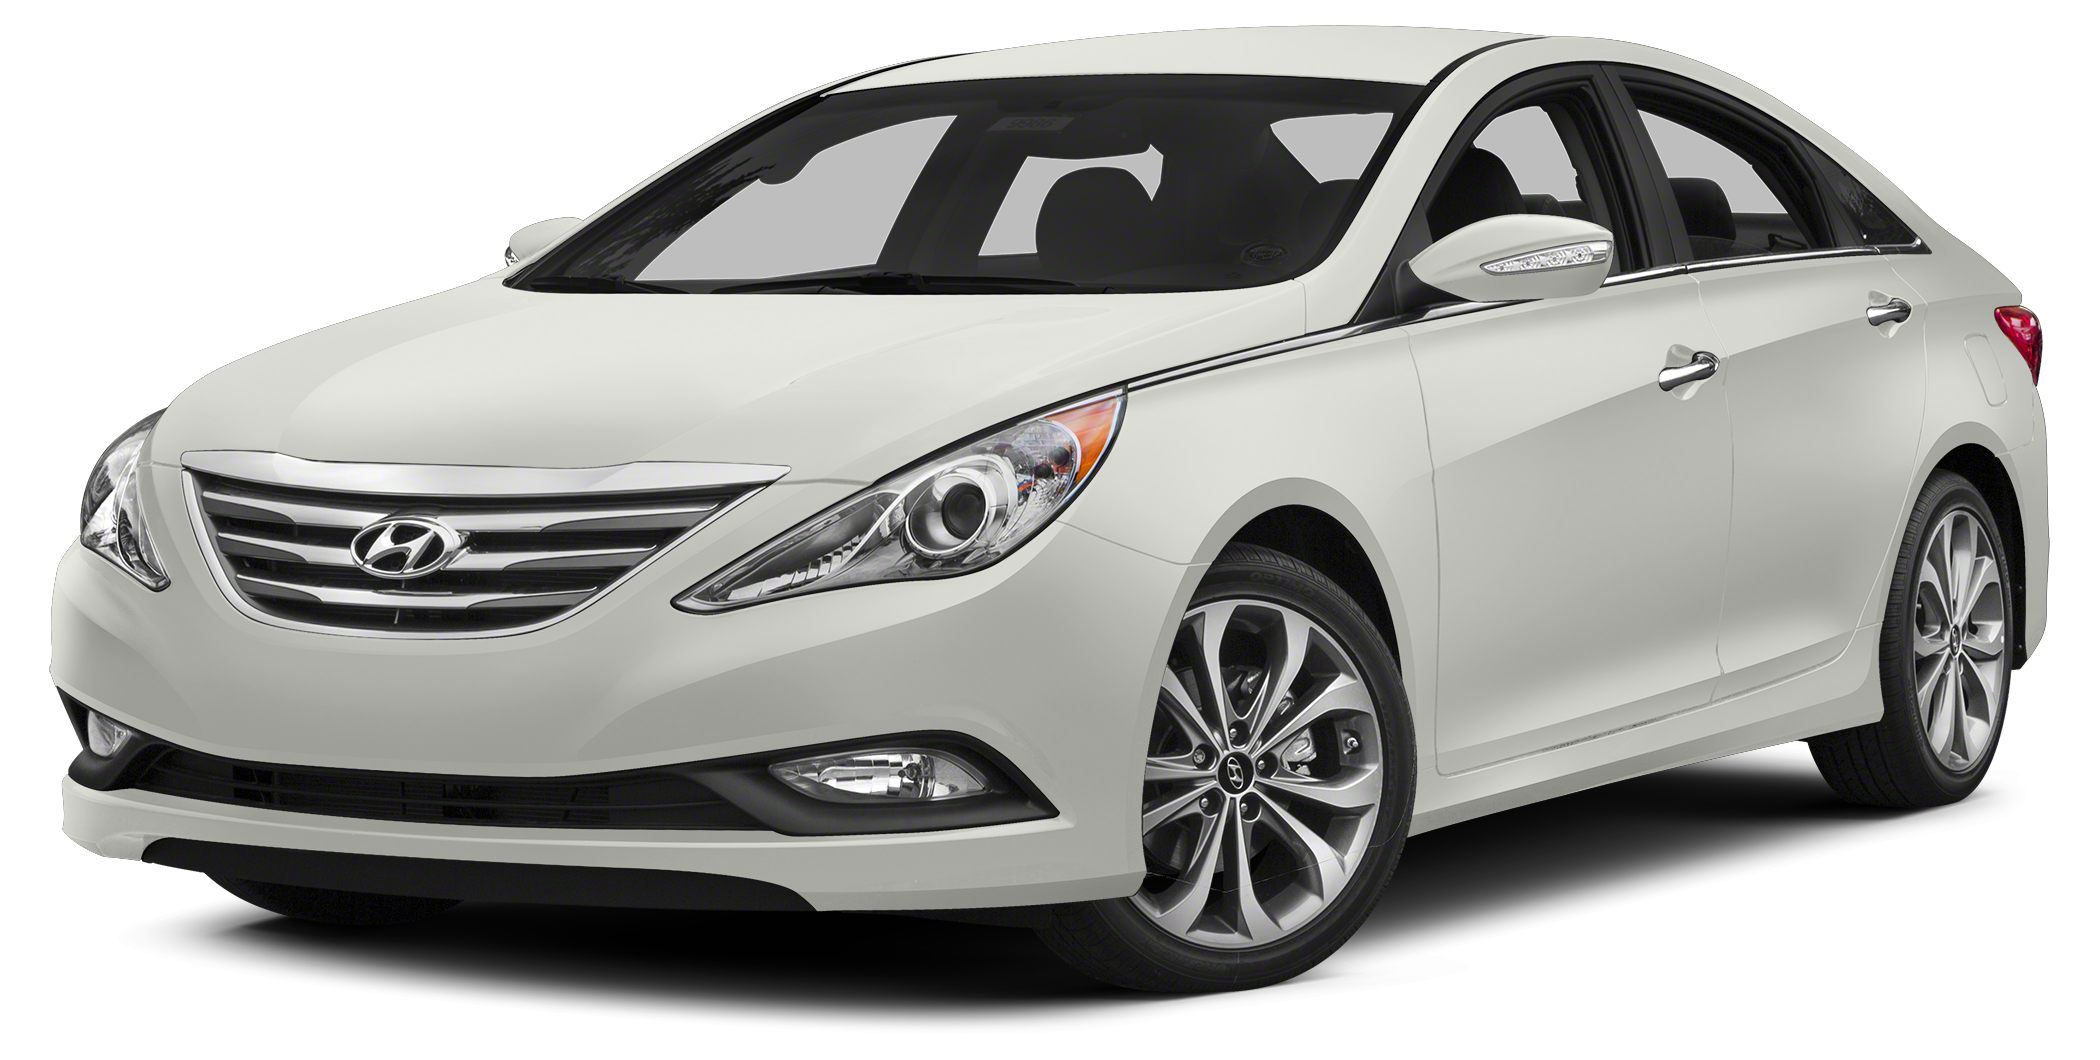 2014 Hyundai Sonata SE 20T 2014 Hyundai Sonata Limited 20T in Pearl White Bluetooth for Phone a